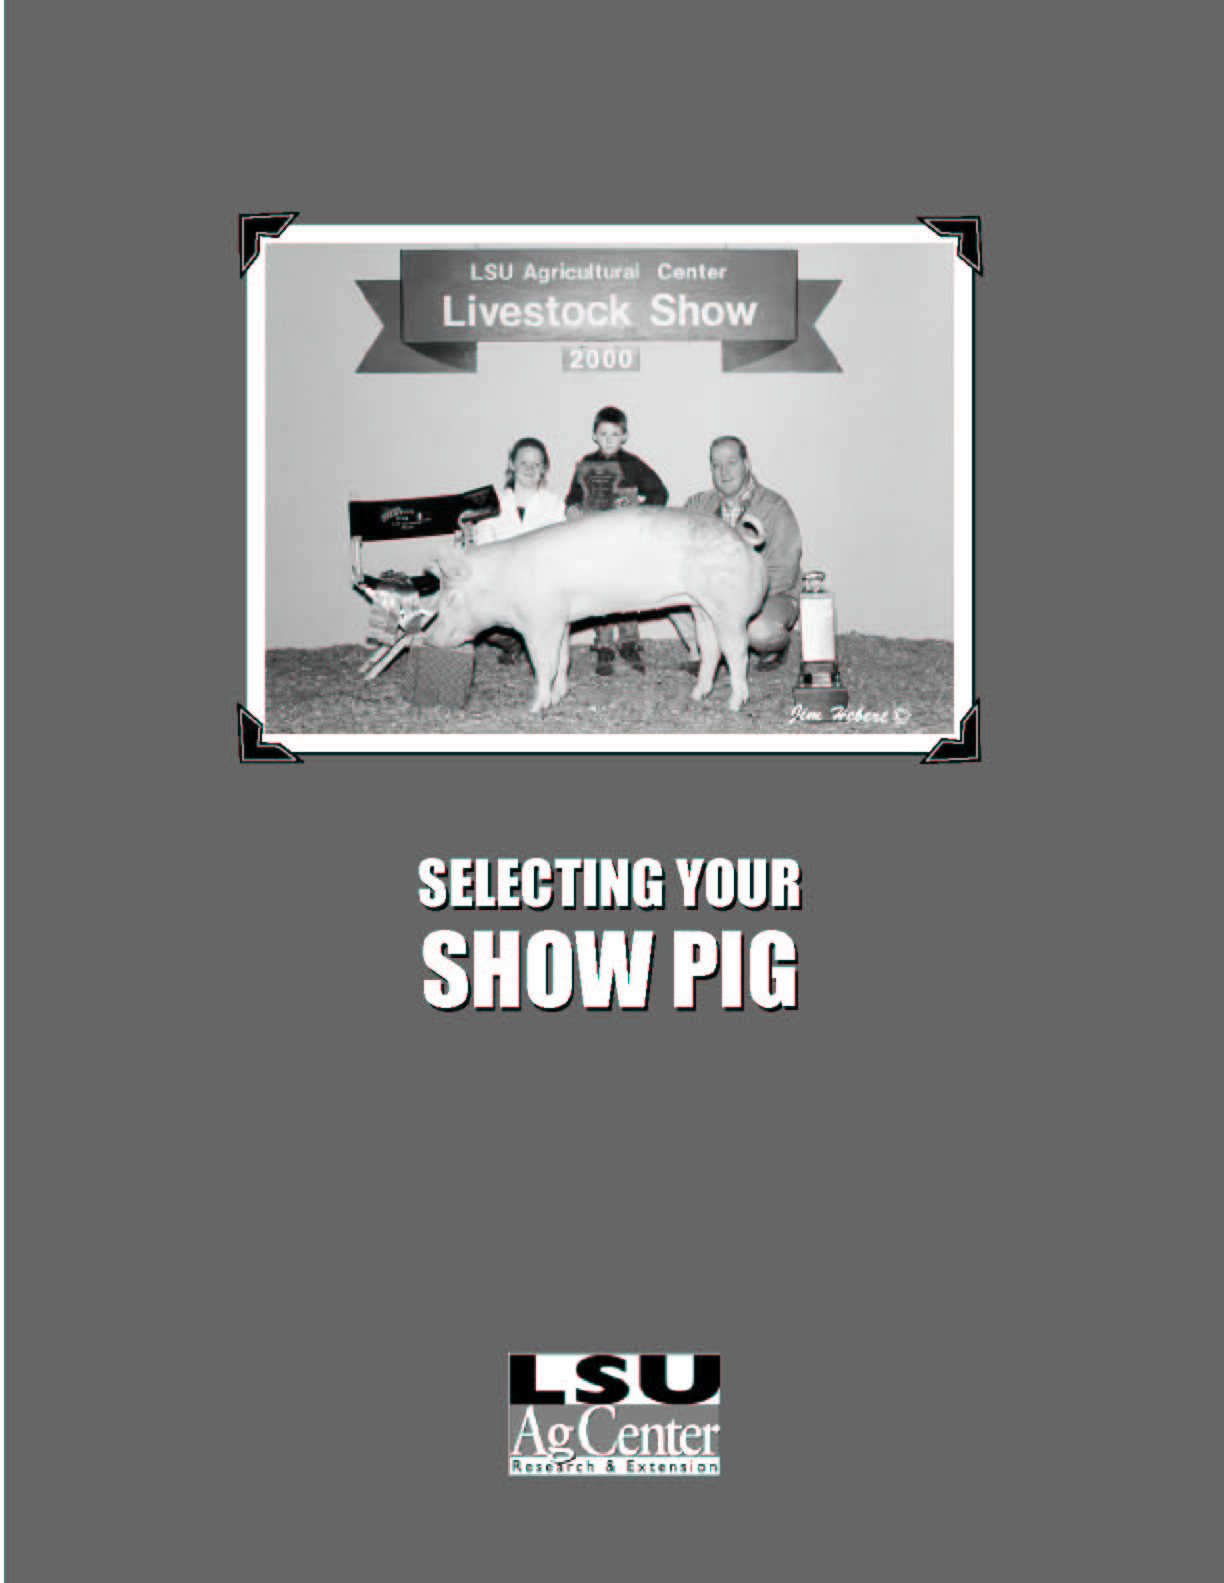 Selecting Your Show Pig